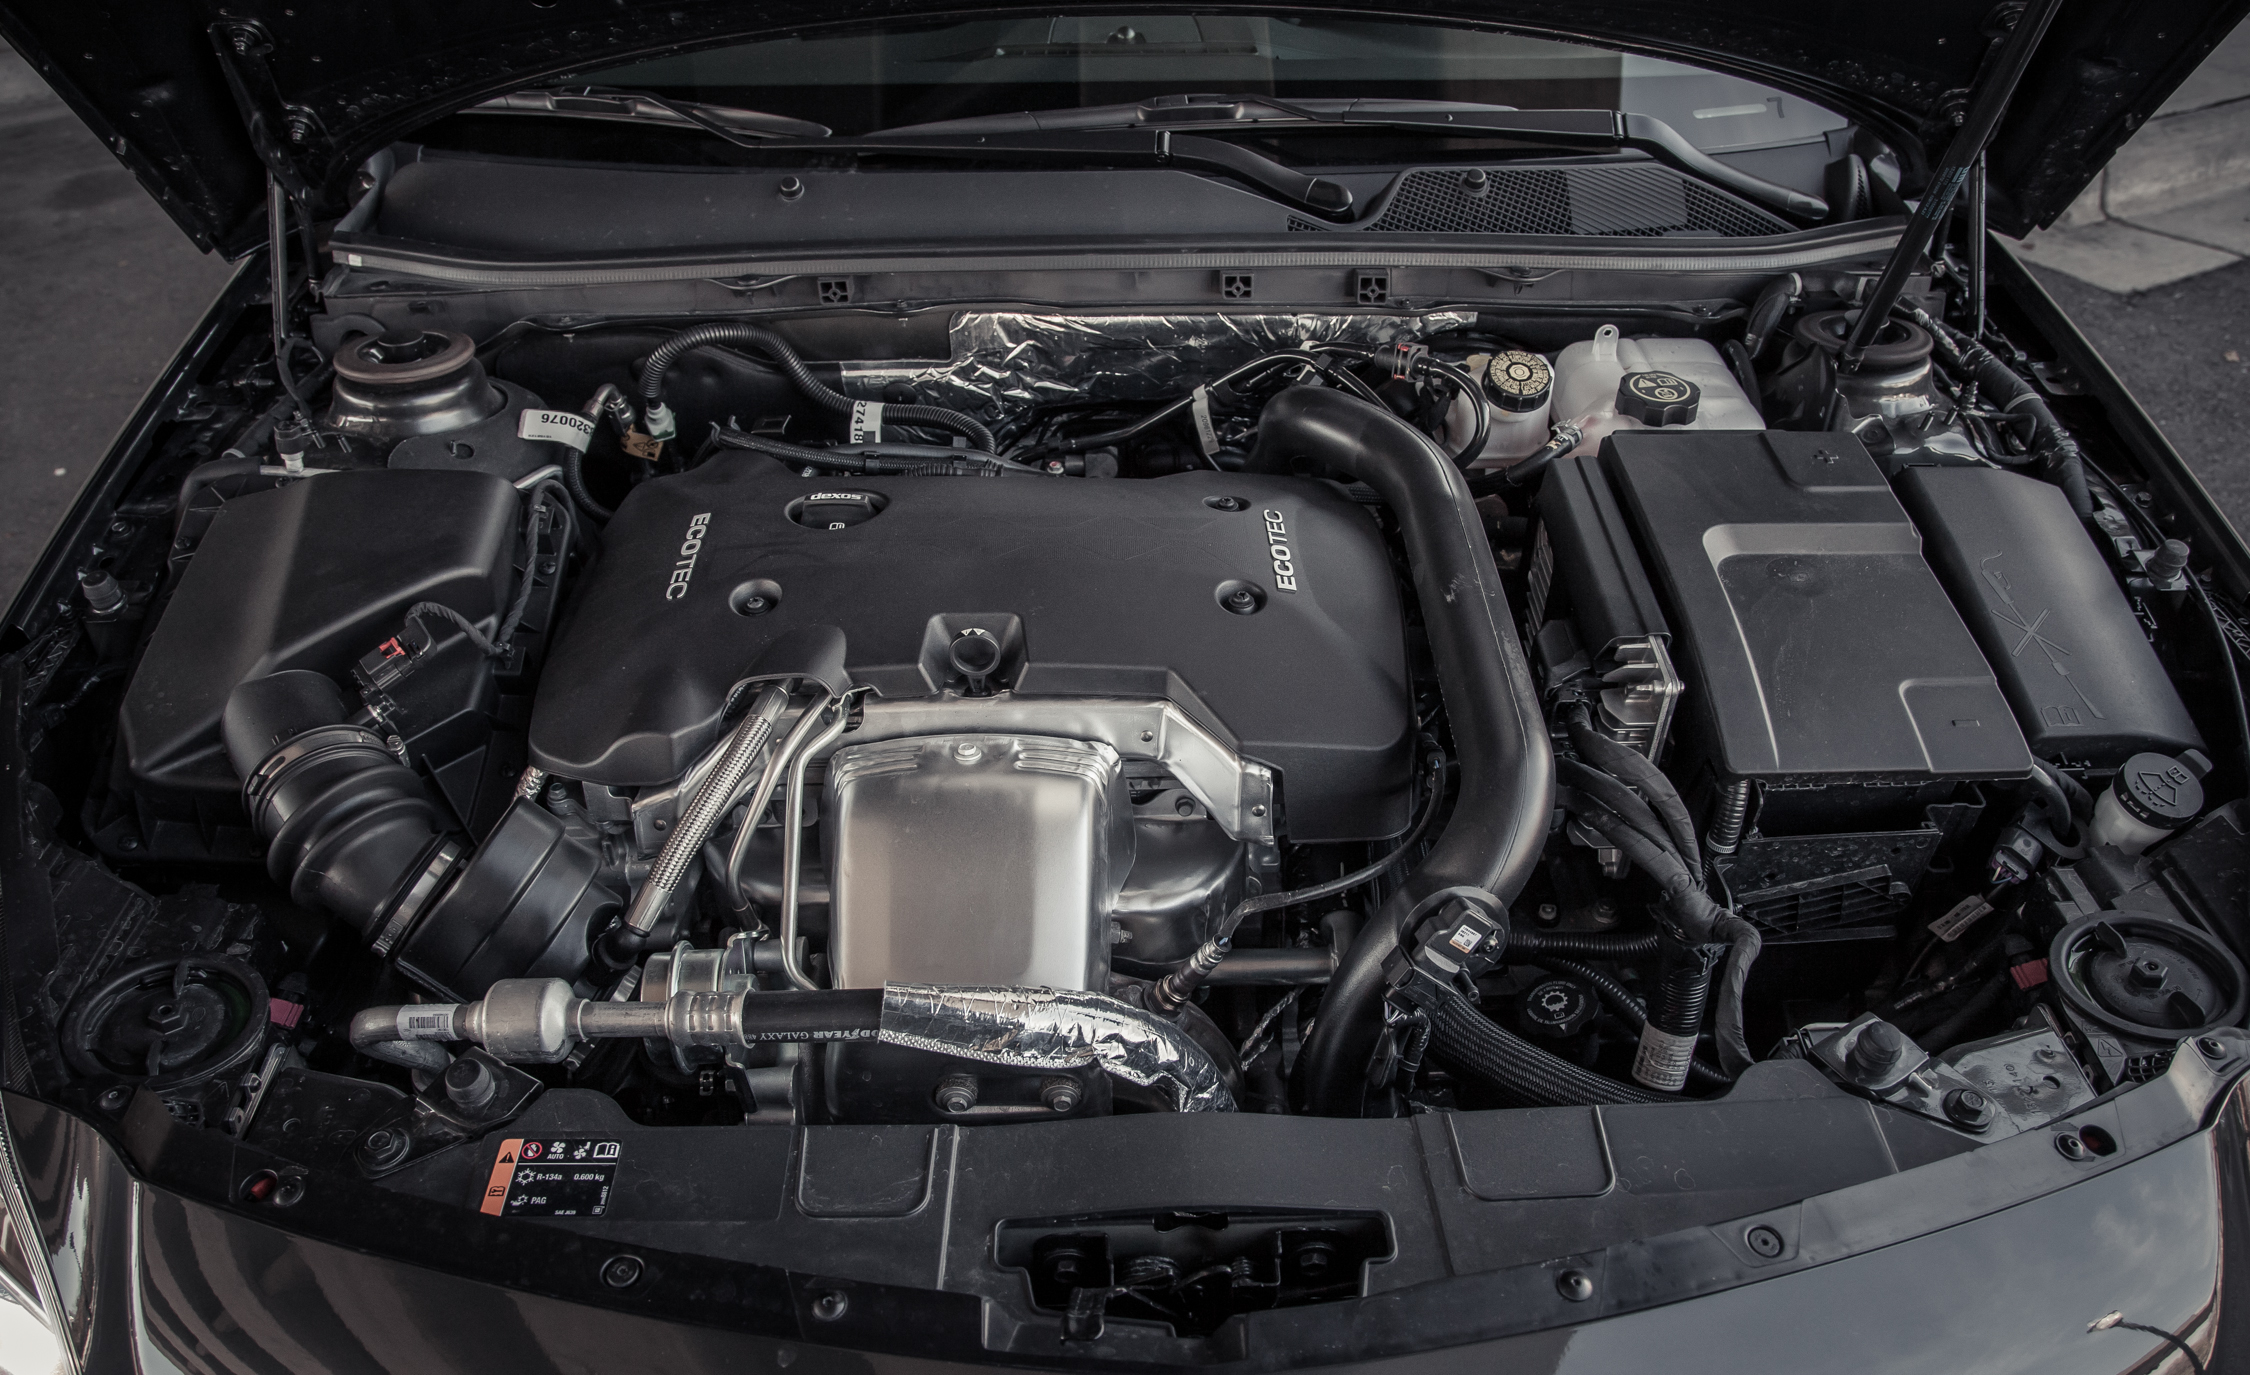 2014 Buick Regal Turbo View Engine (Photo 30 of 30)